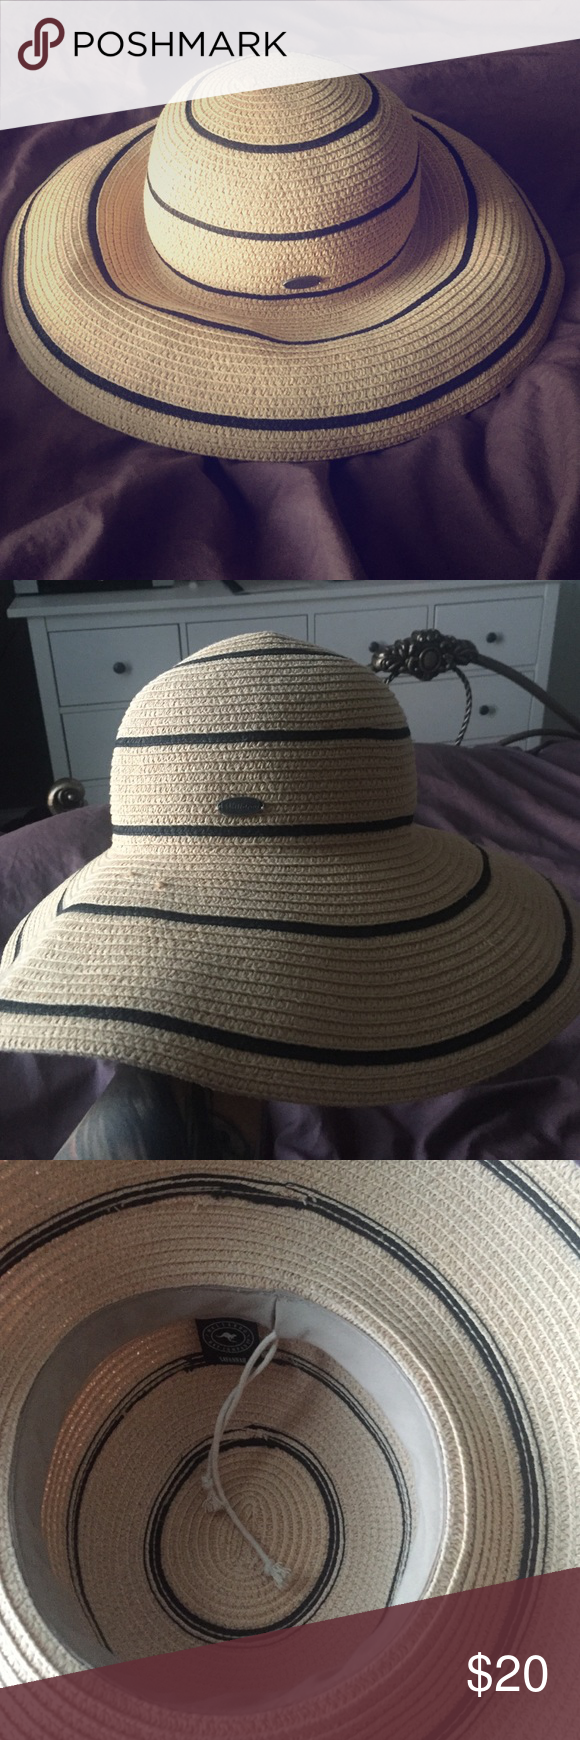 WALLAROO beach hat Beach hat I bought from a boutique. This hat is great for traveling because it rolls up without ruining!!! Wallaroo Other